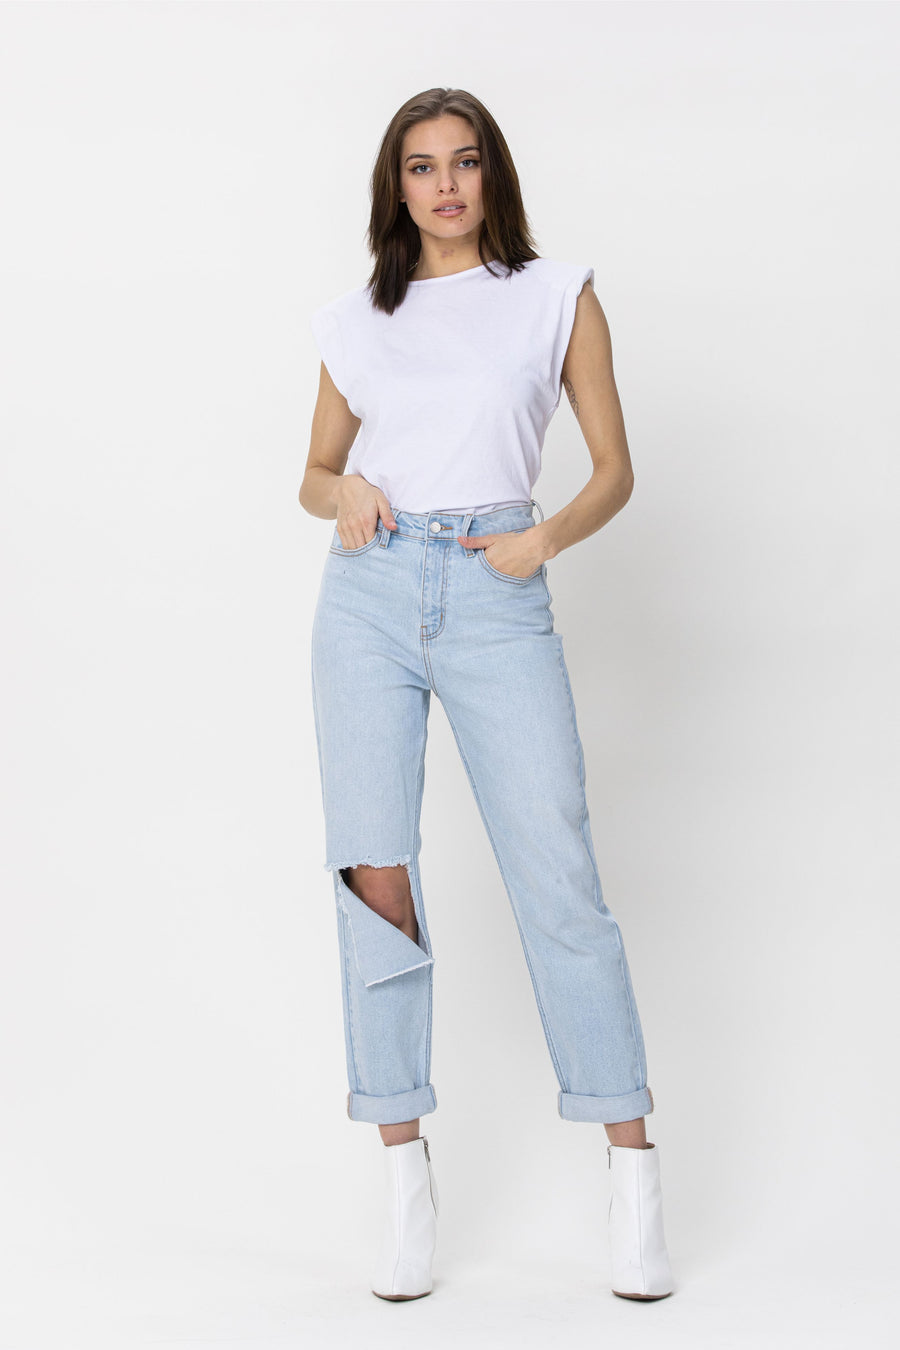 High Rise Knee Cut Double Rolled Cuff Crop Mom